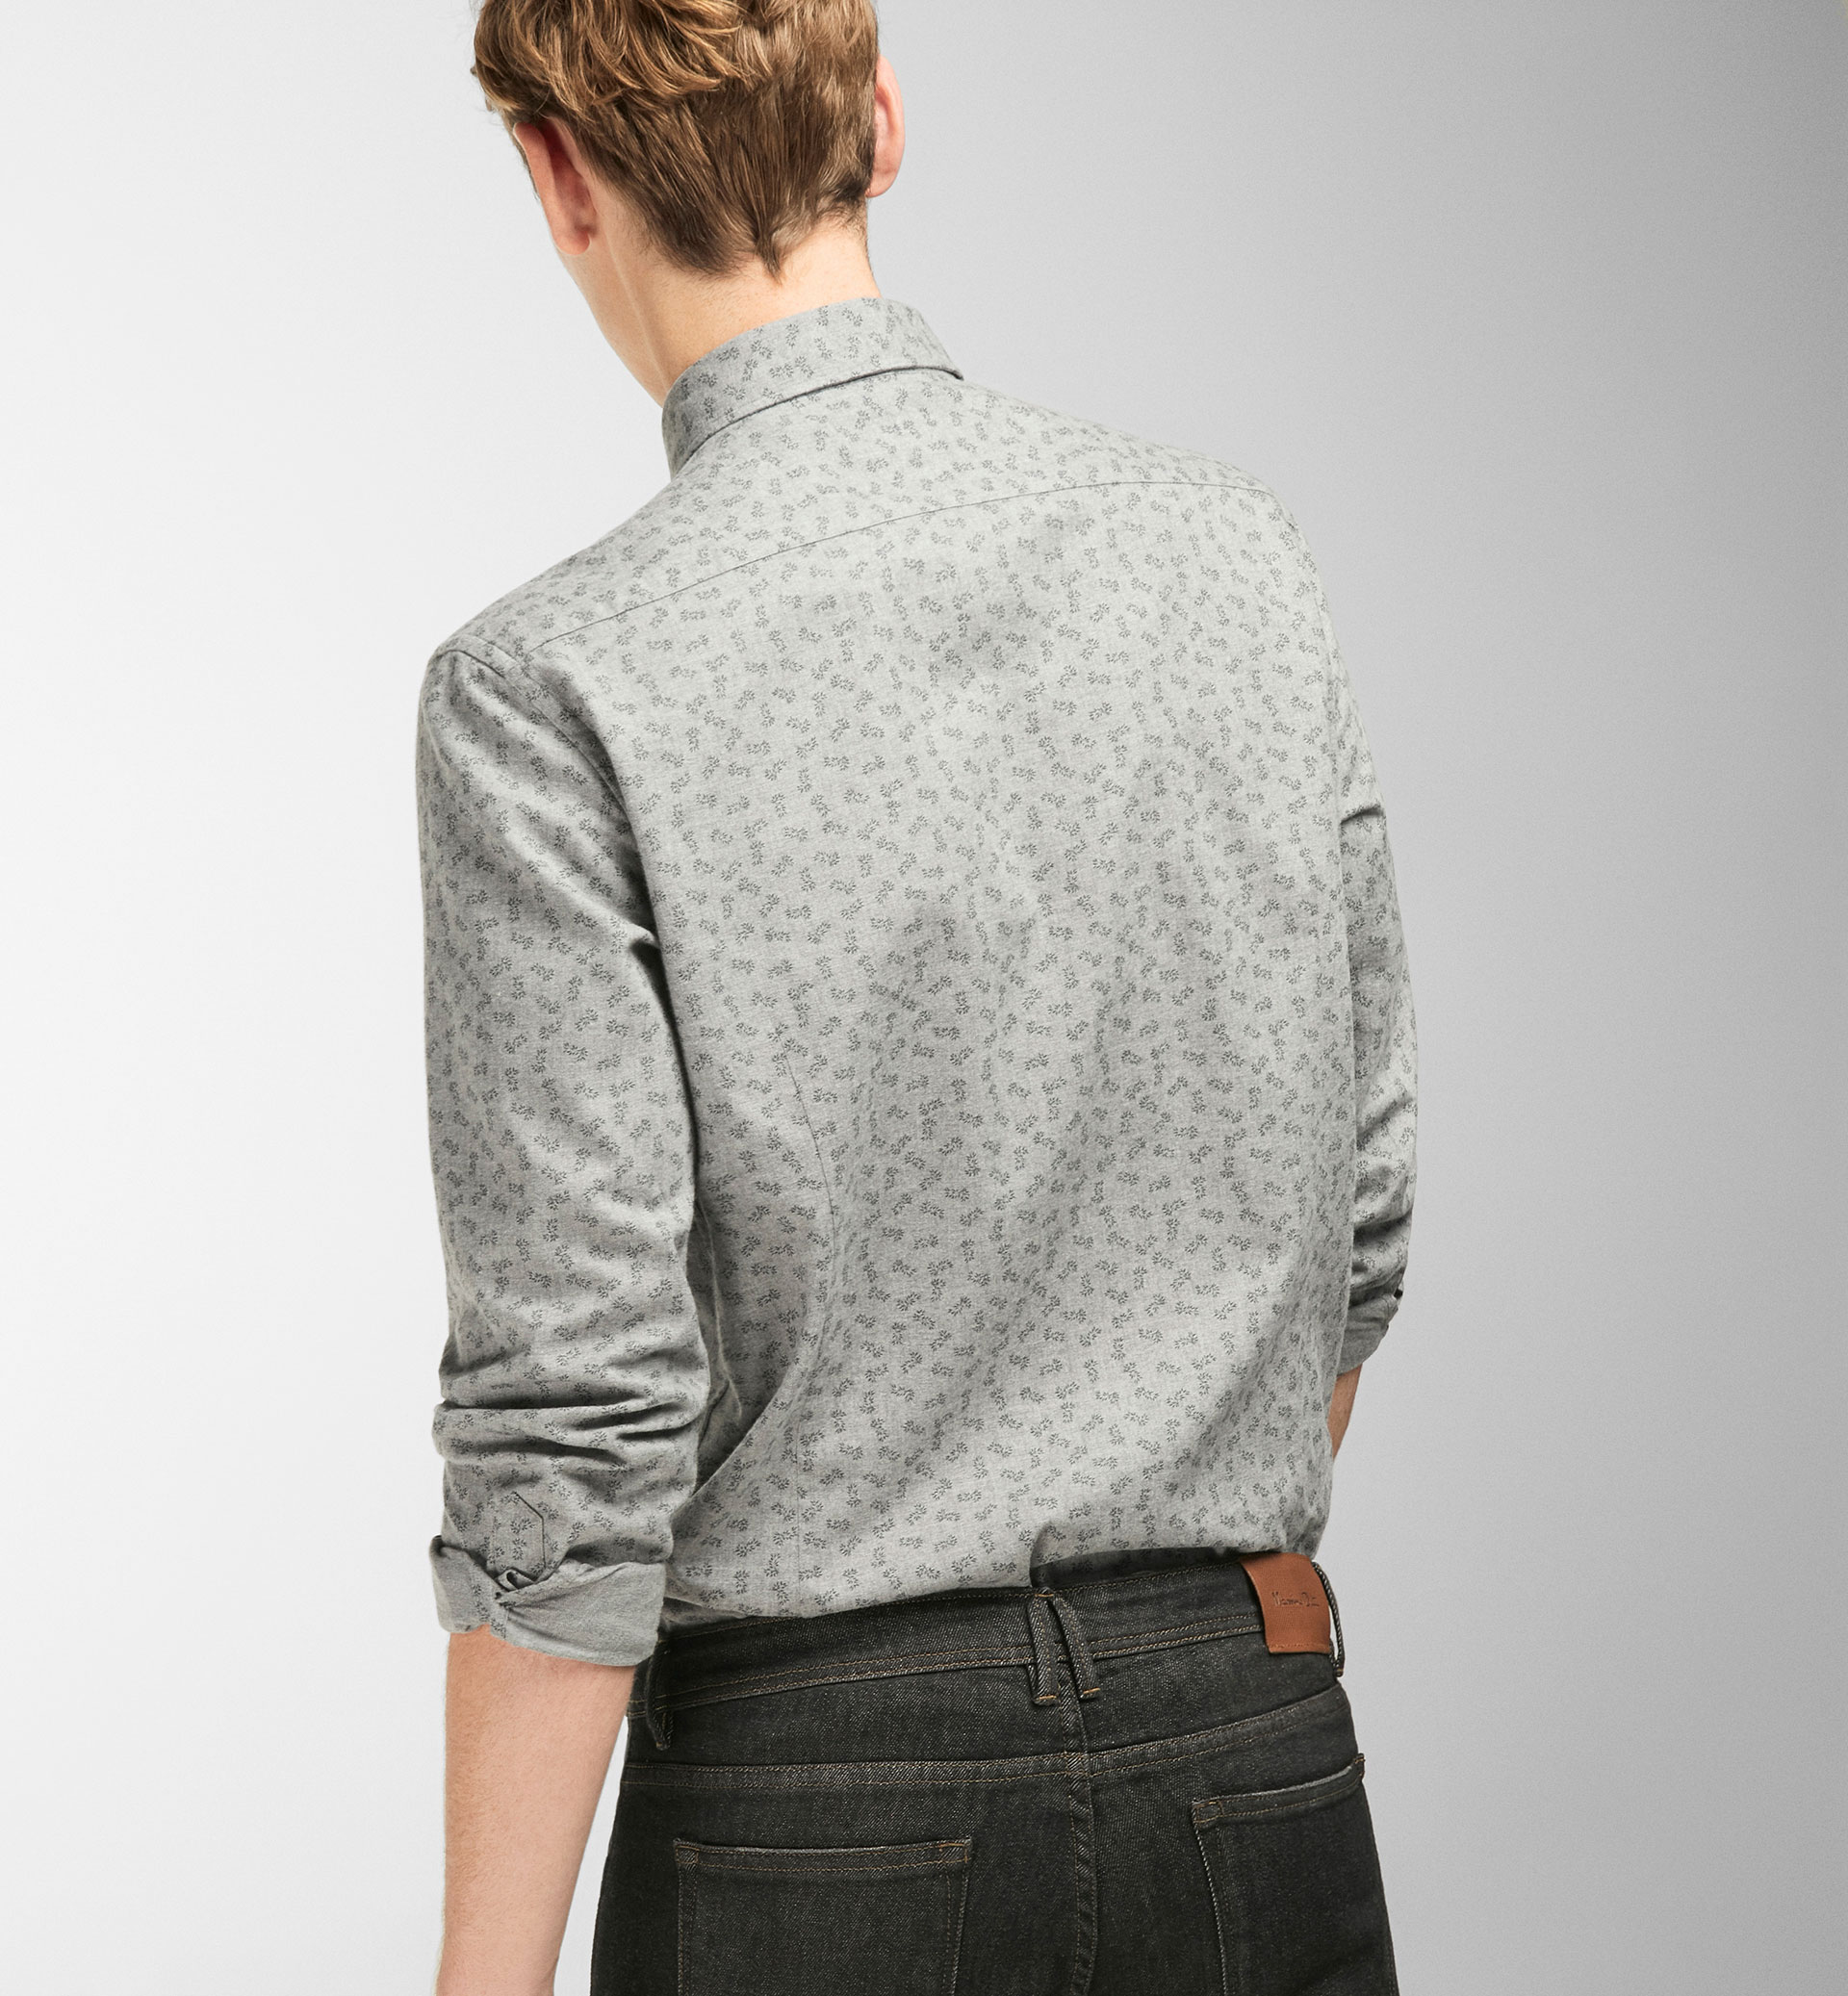 SLIM FIT BLACK LEAVES GREY SHIRT